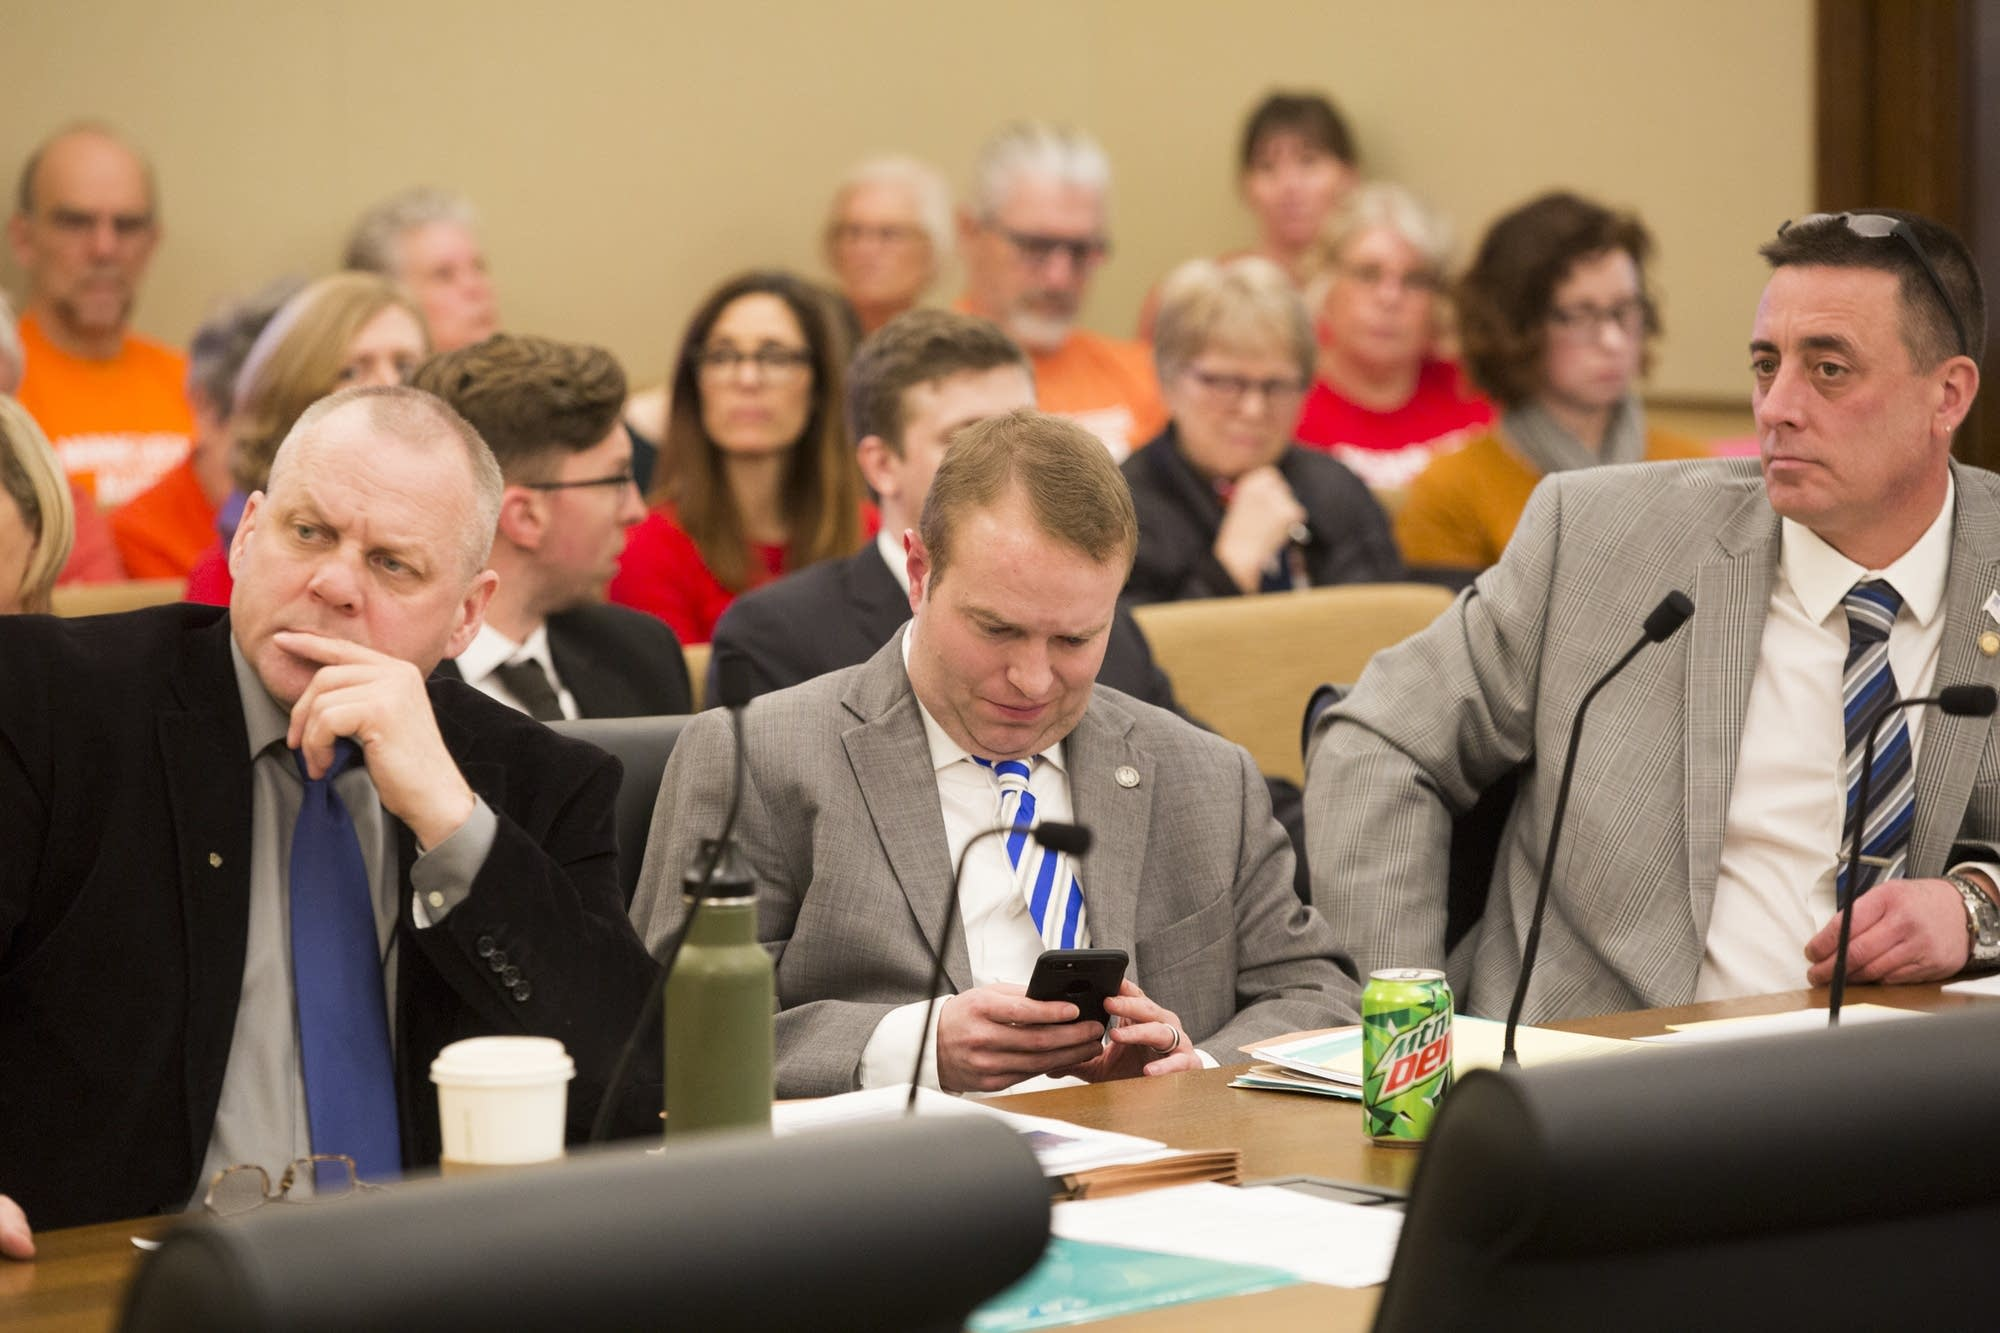 GOP Rep. Nick Zerwas looks at his phone